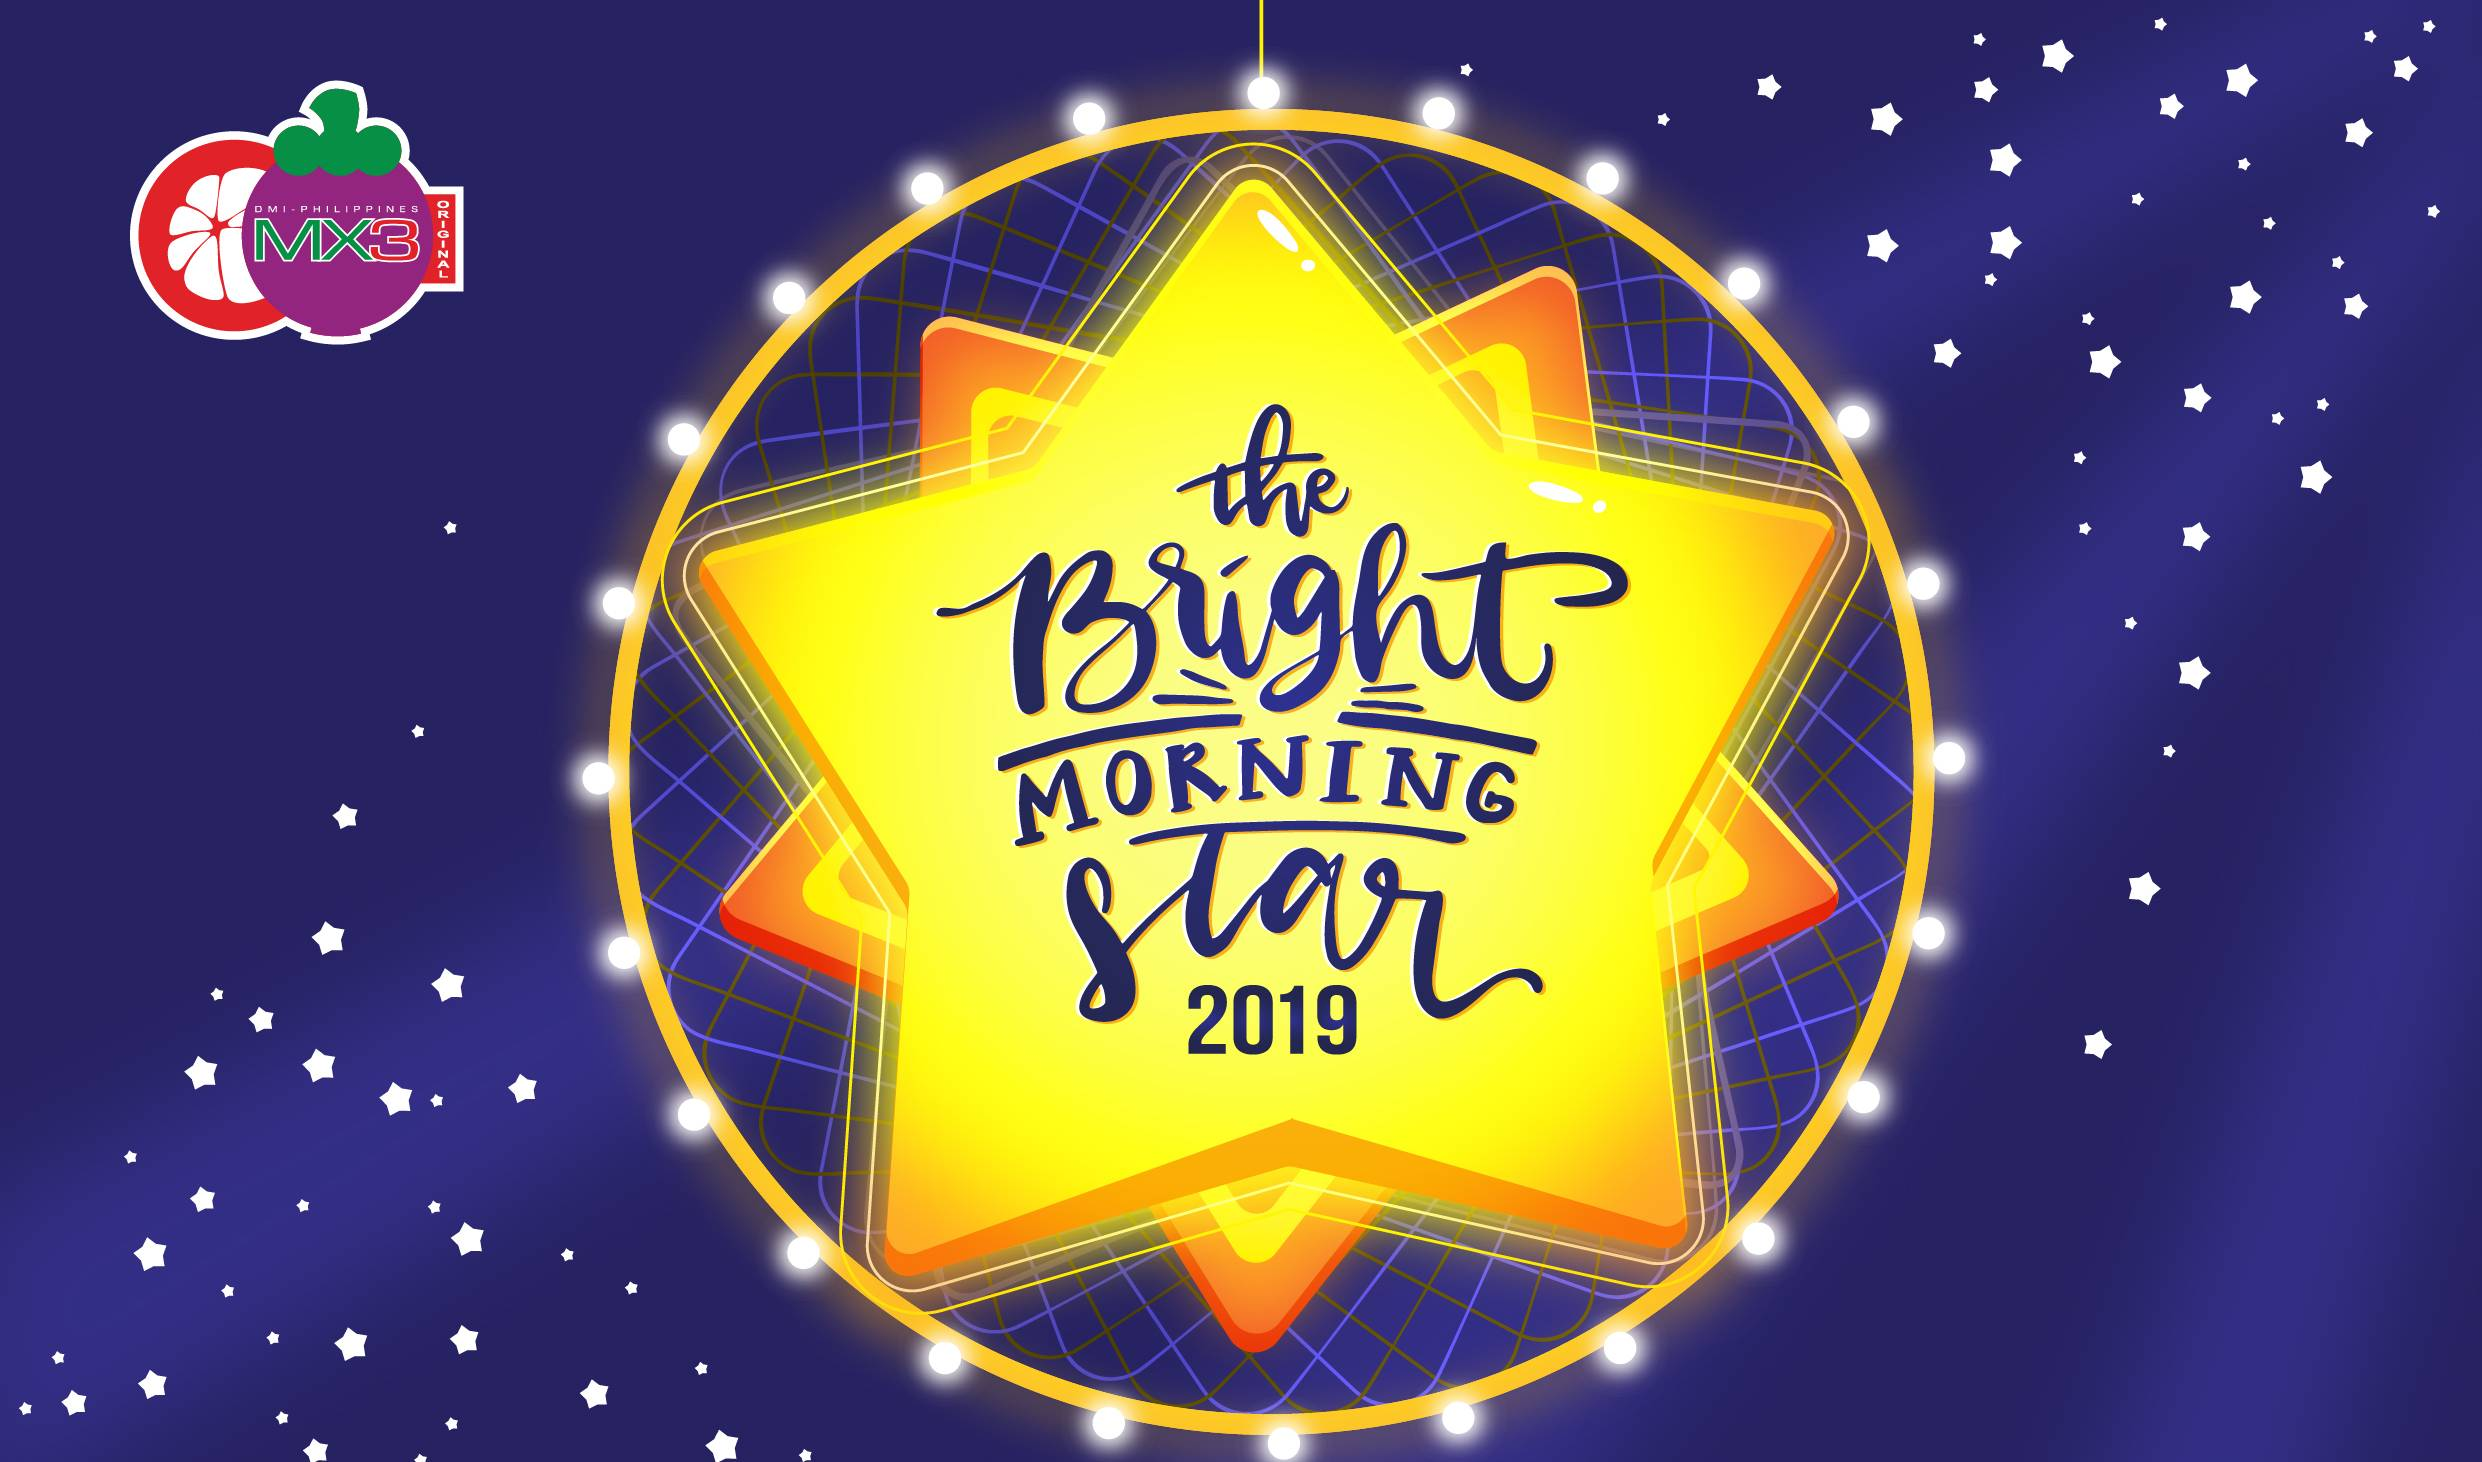 mx3-bright-morning-star-2019